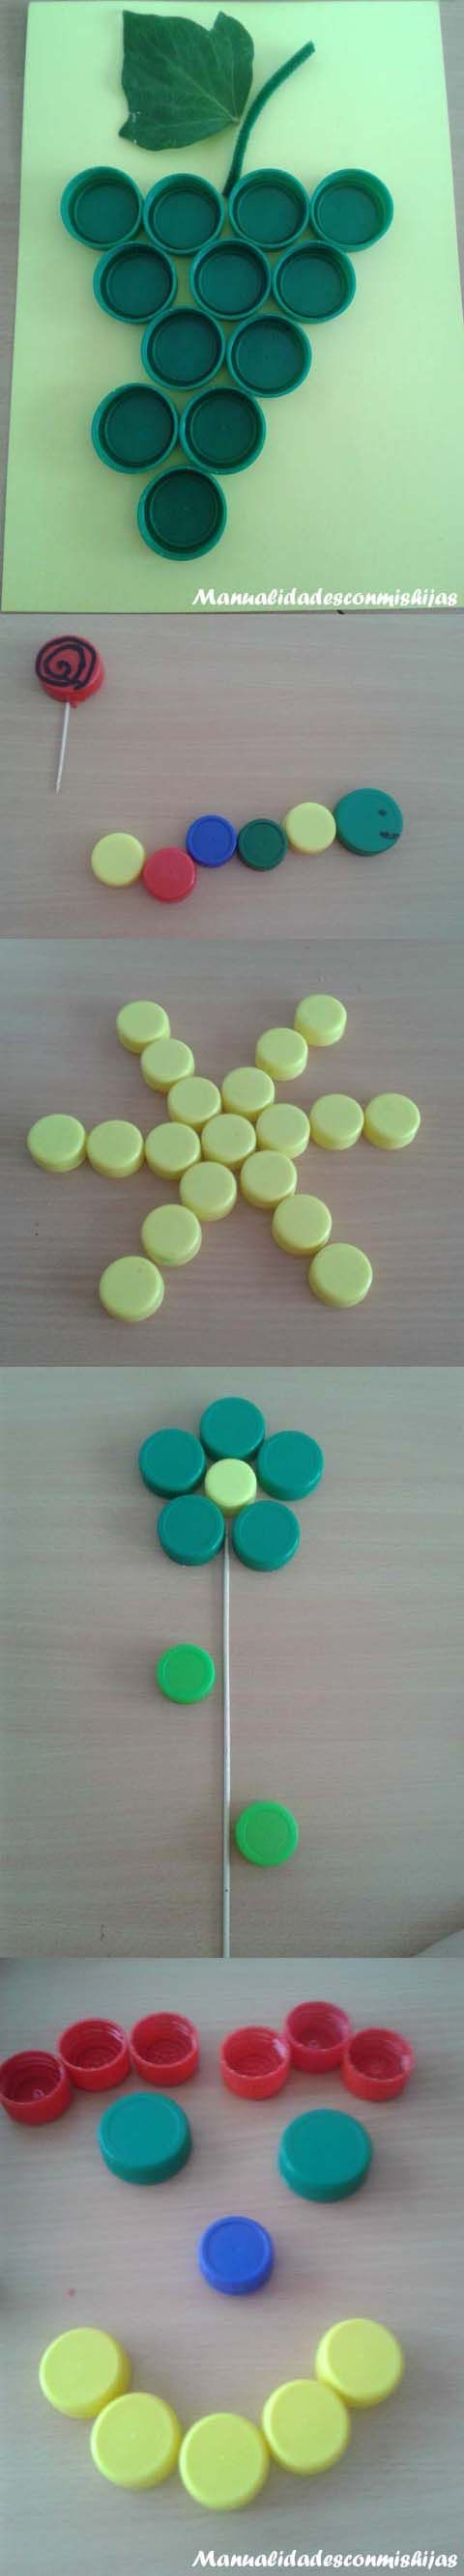 Plastic Bottle Caps: Grapes, star, caterpillar, flower, smiling face